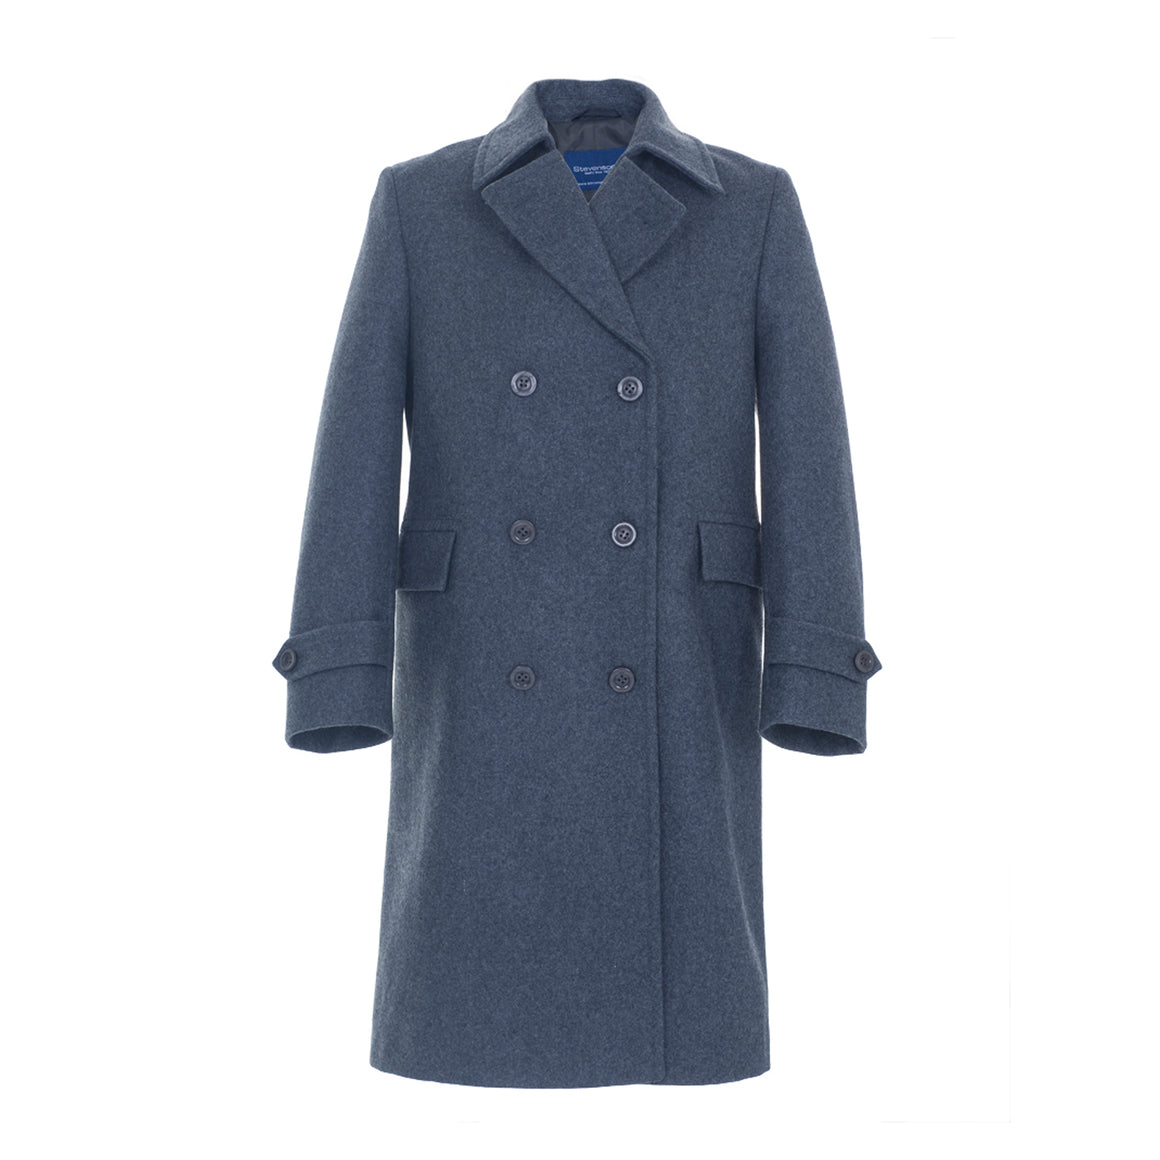 Oxford House Coat in Grey